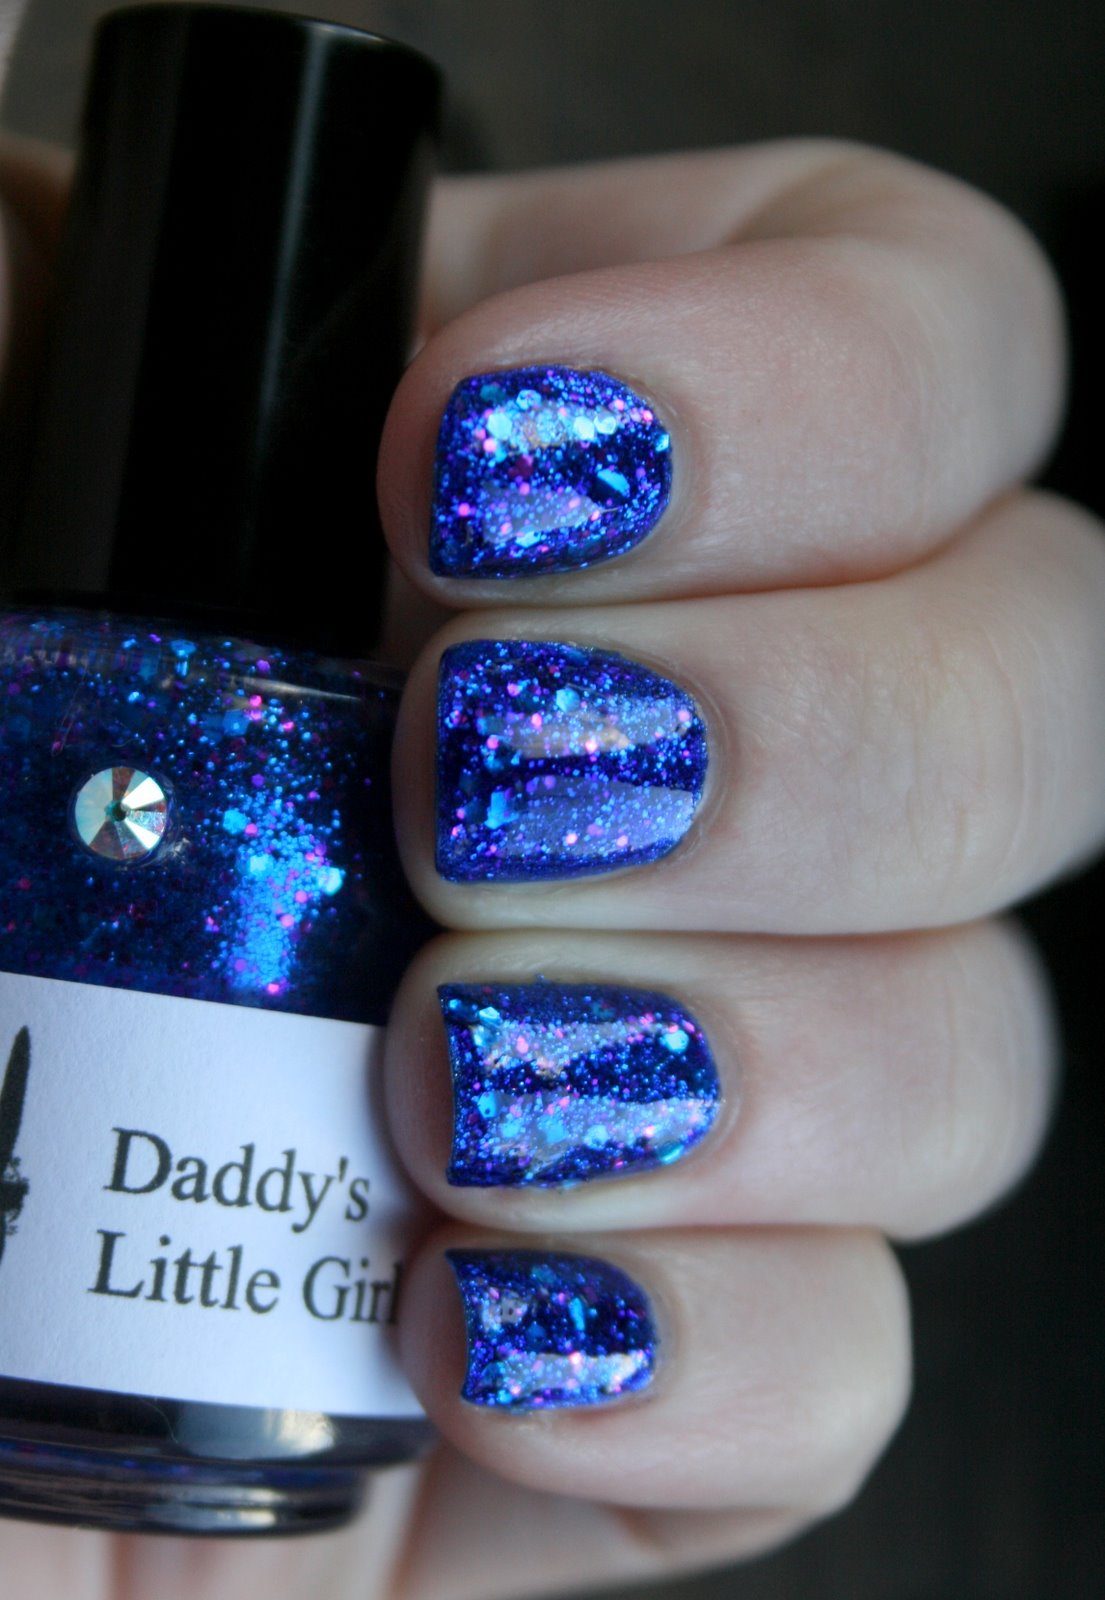 Girly Bits Daddy's Little Girl swatch